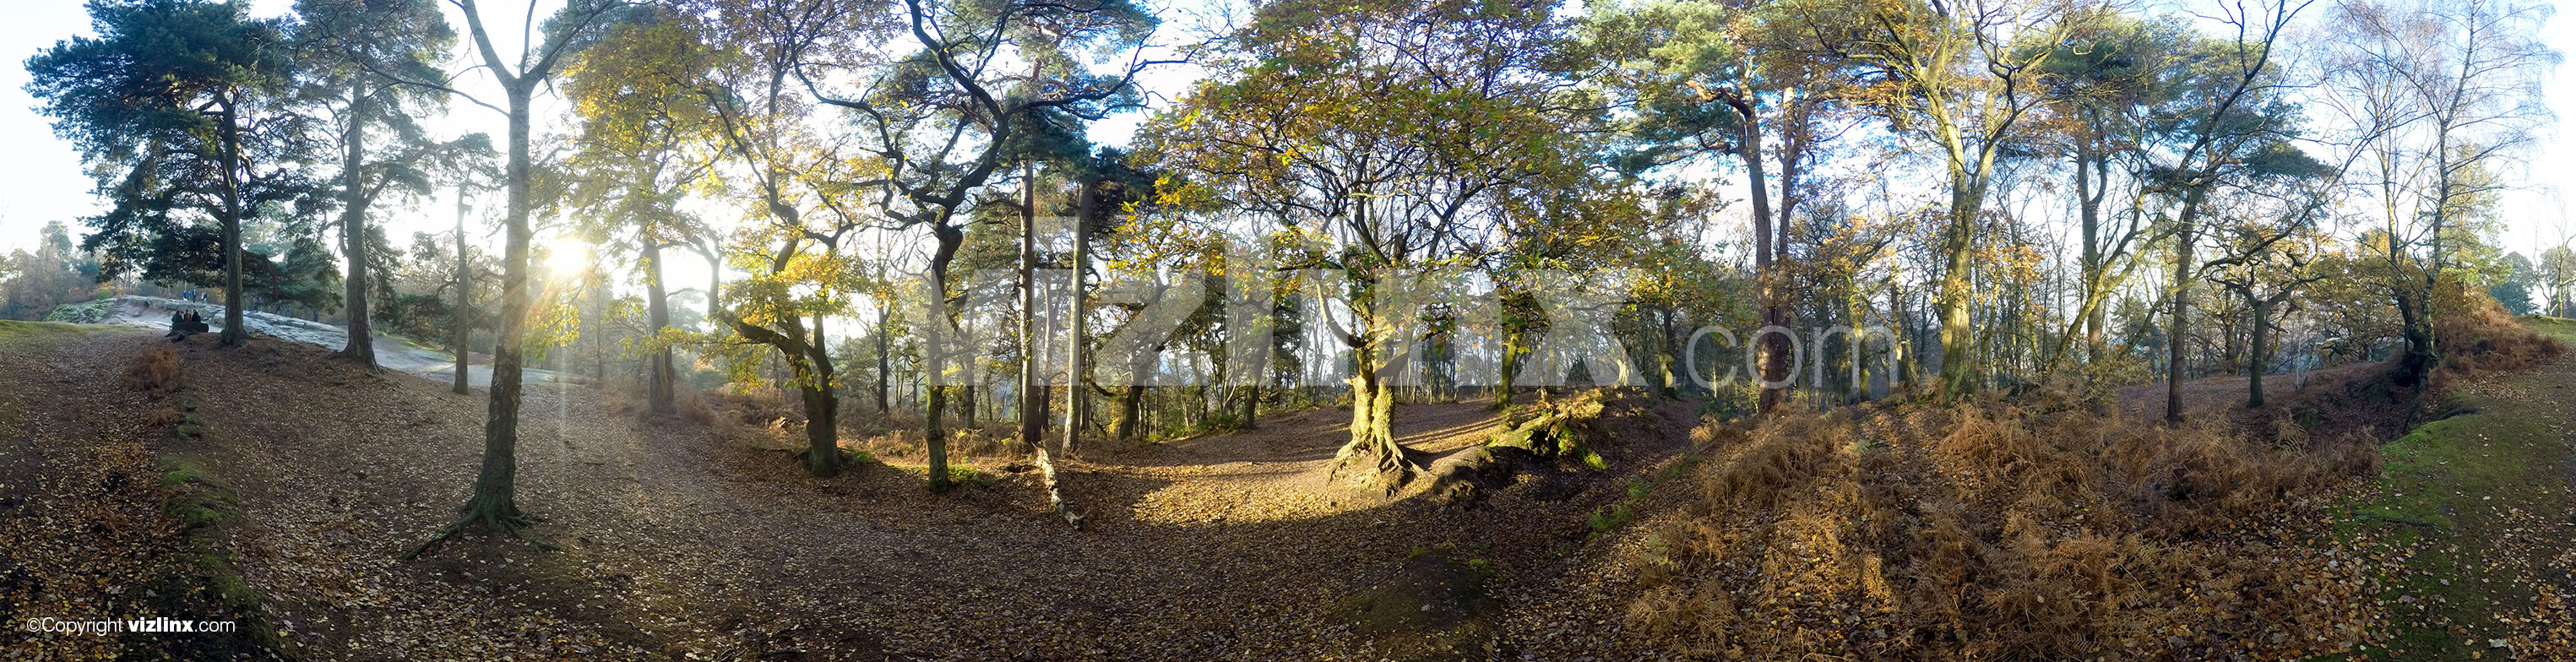 360 panorama of Alderley Edge, Cheshire, vizlinx.com